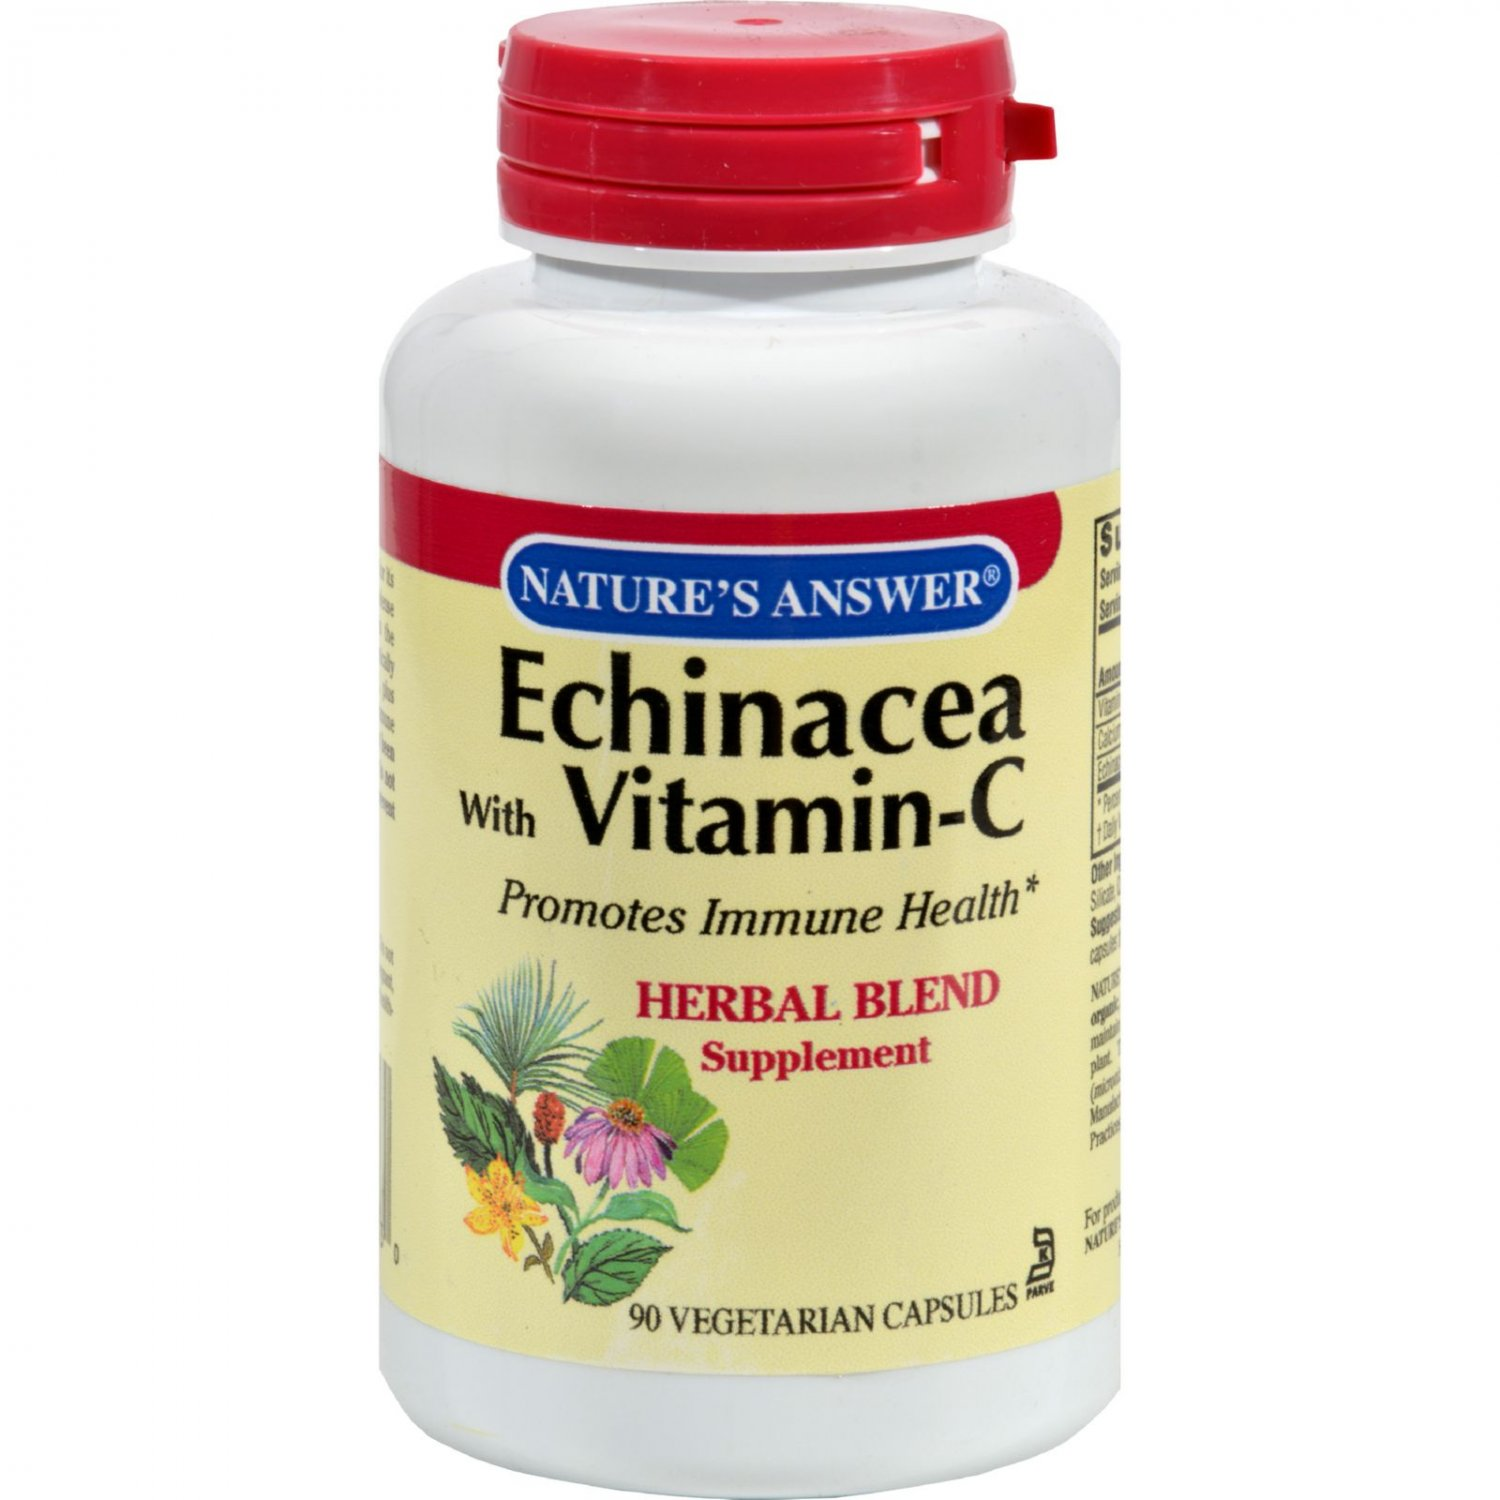 Nature's Answer Echinacea with Ester C - 90 Vcaps